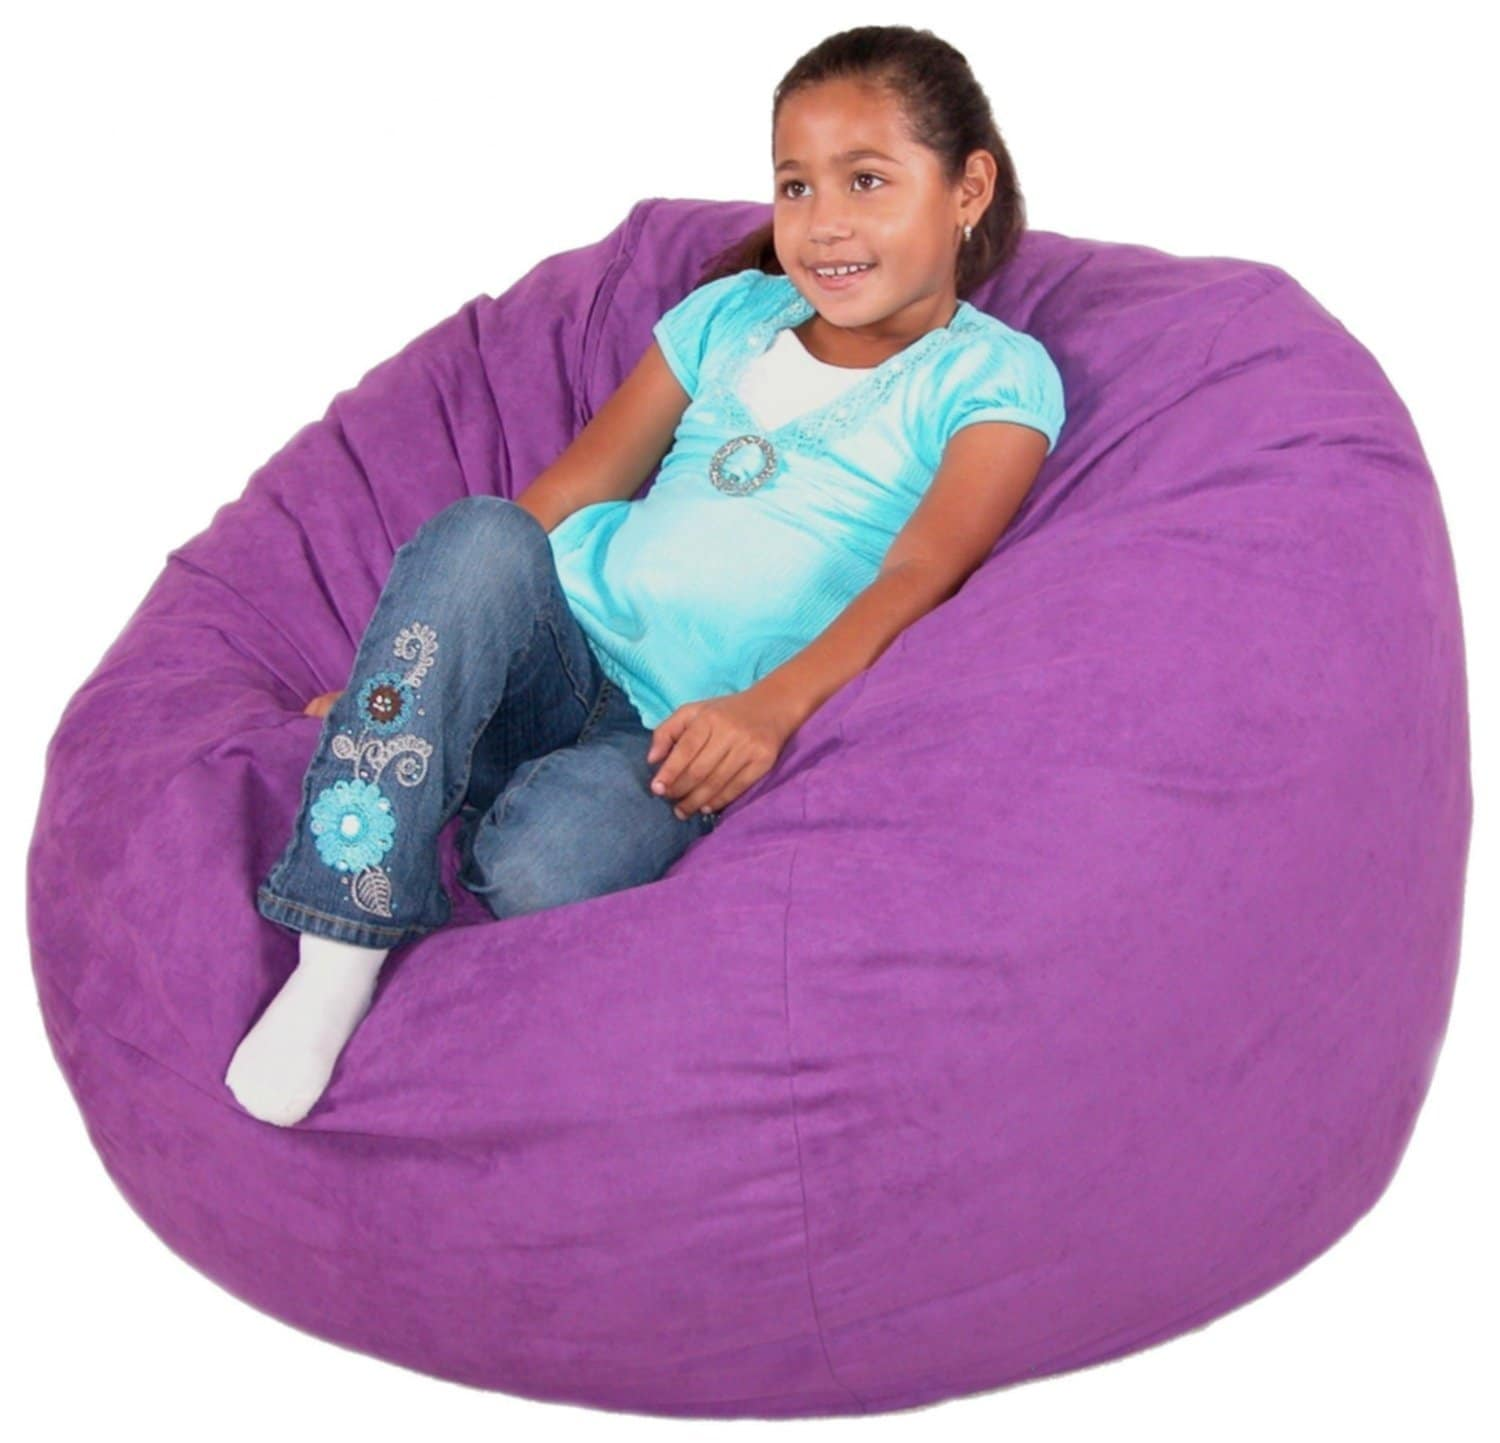 Cozy Purple Bean Bags Chairs